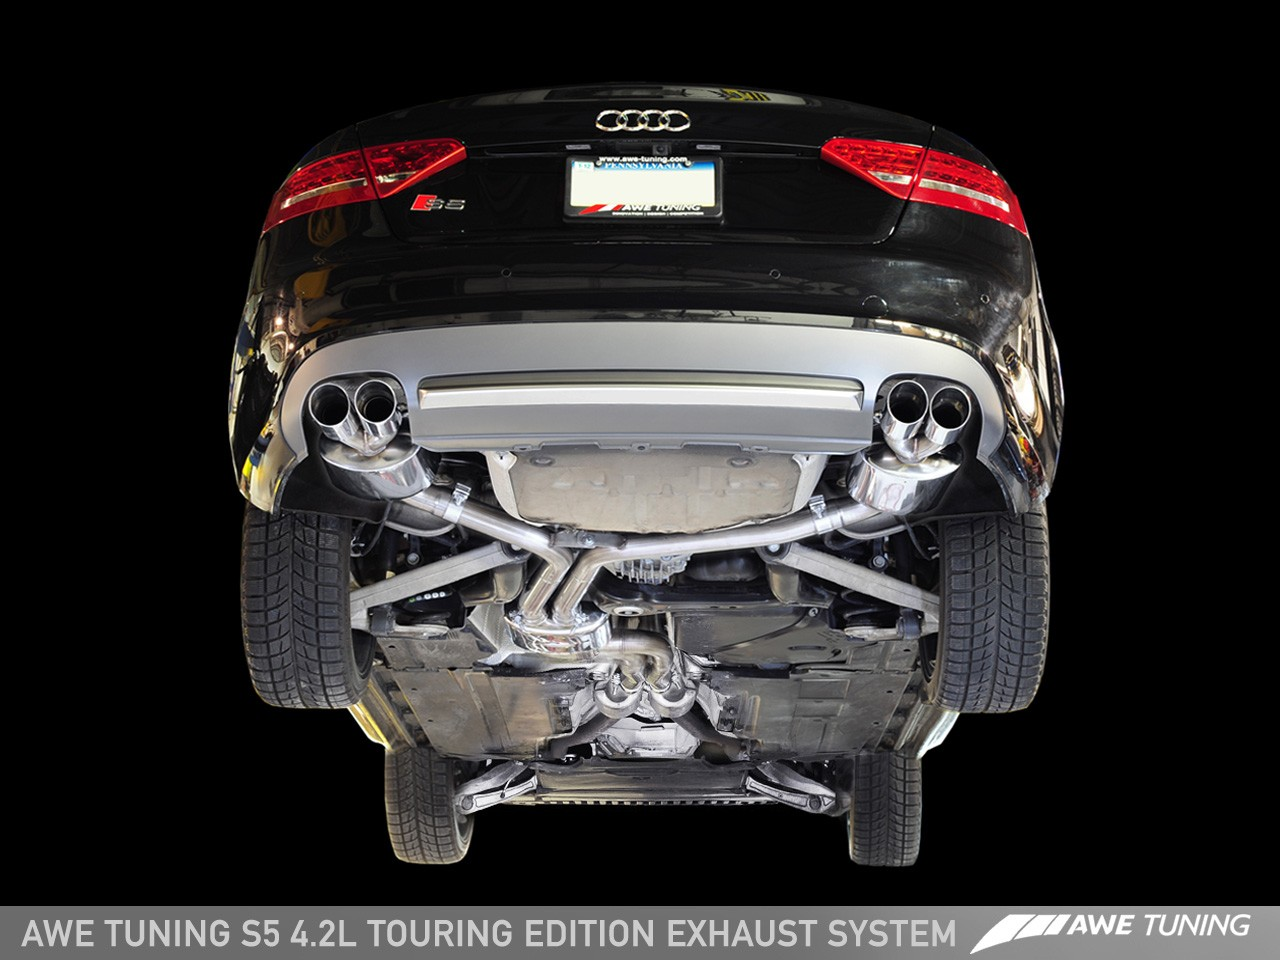 awe track and touring edition exhausts for audi s5 4 2l awe tuning rh awe tuning com Audi A3 Exhaust Diagram Audi A3 Milltek Exhaust